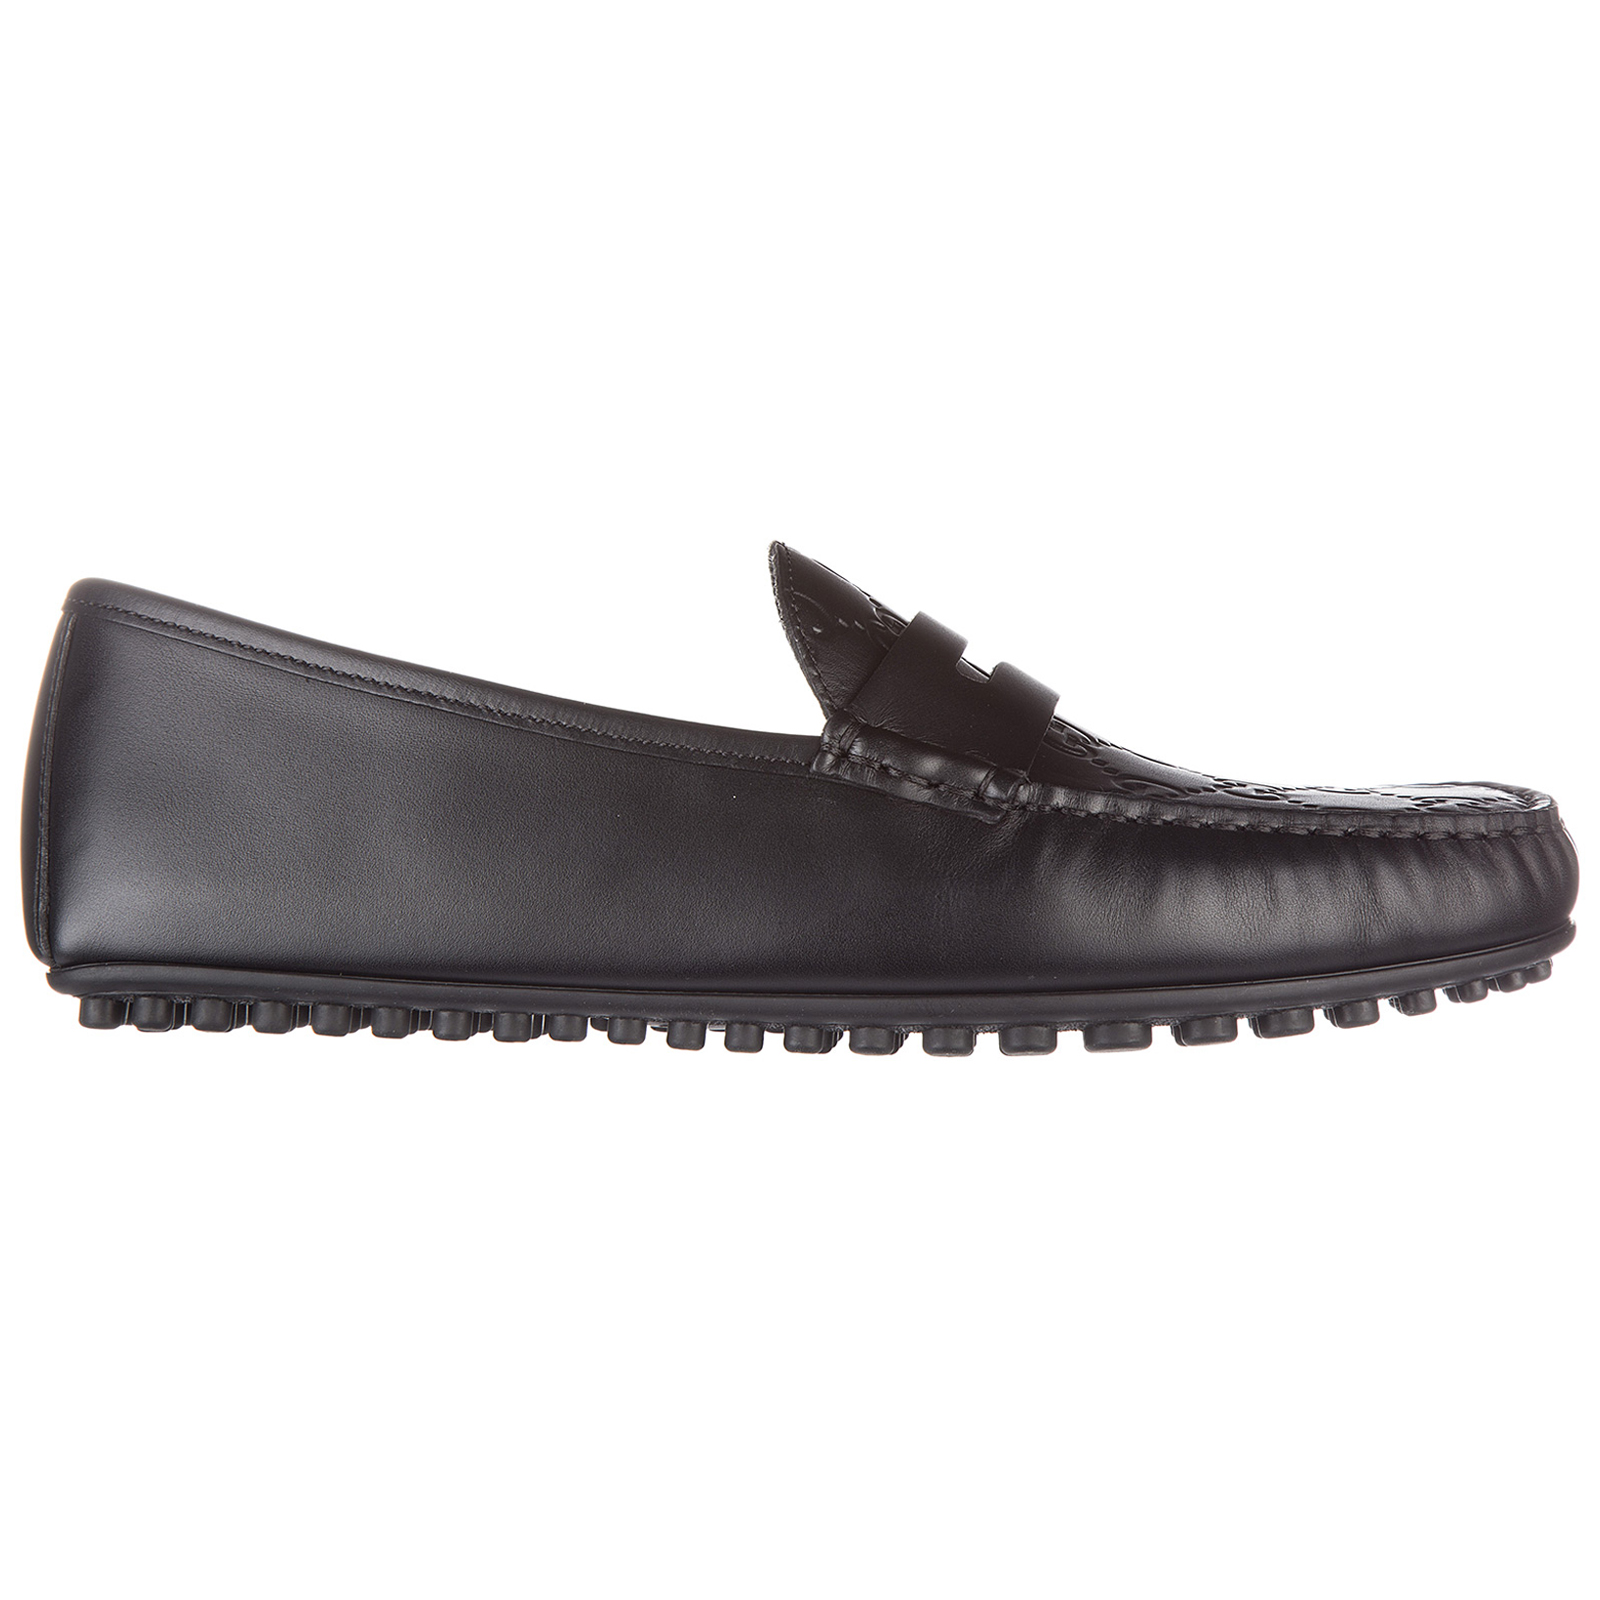 Men's leather loafers moccasins  calf gucci signature